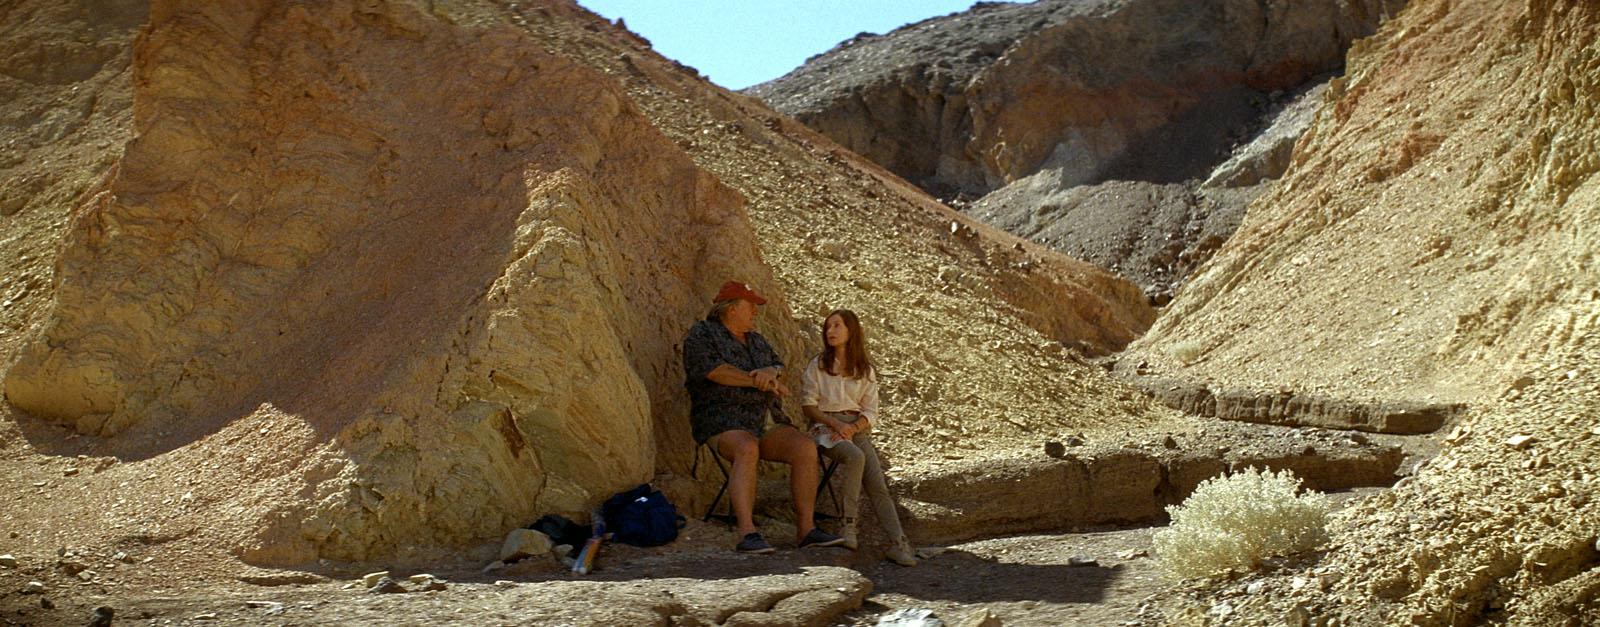 VALLEY OF LOVE - Image du Film Gerard Depardieu Isabelle Huppert 2 2015 Nicloux - Go with the Blog